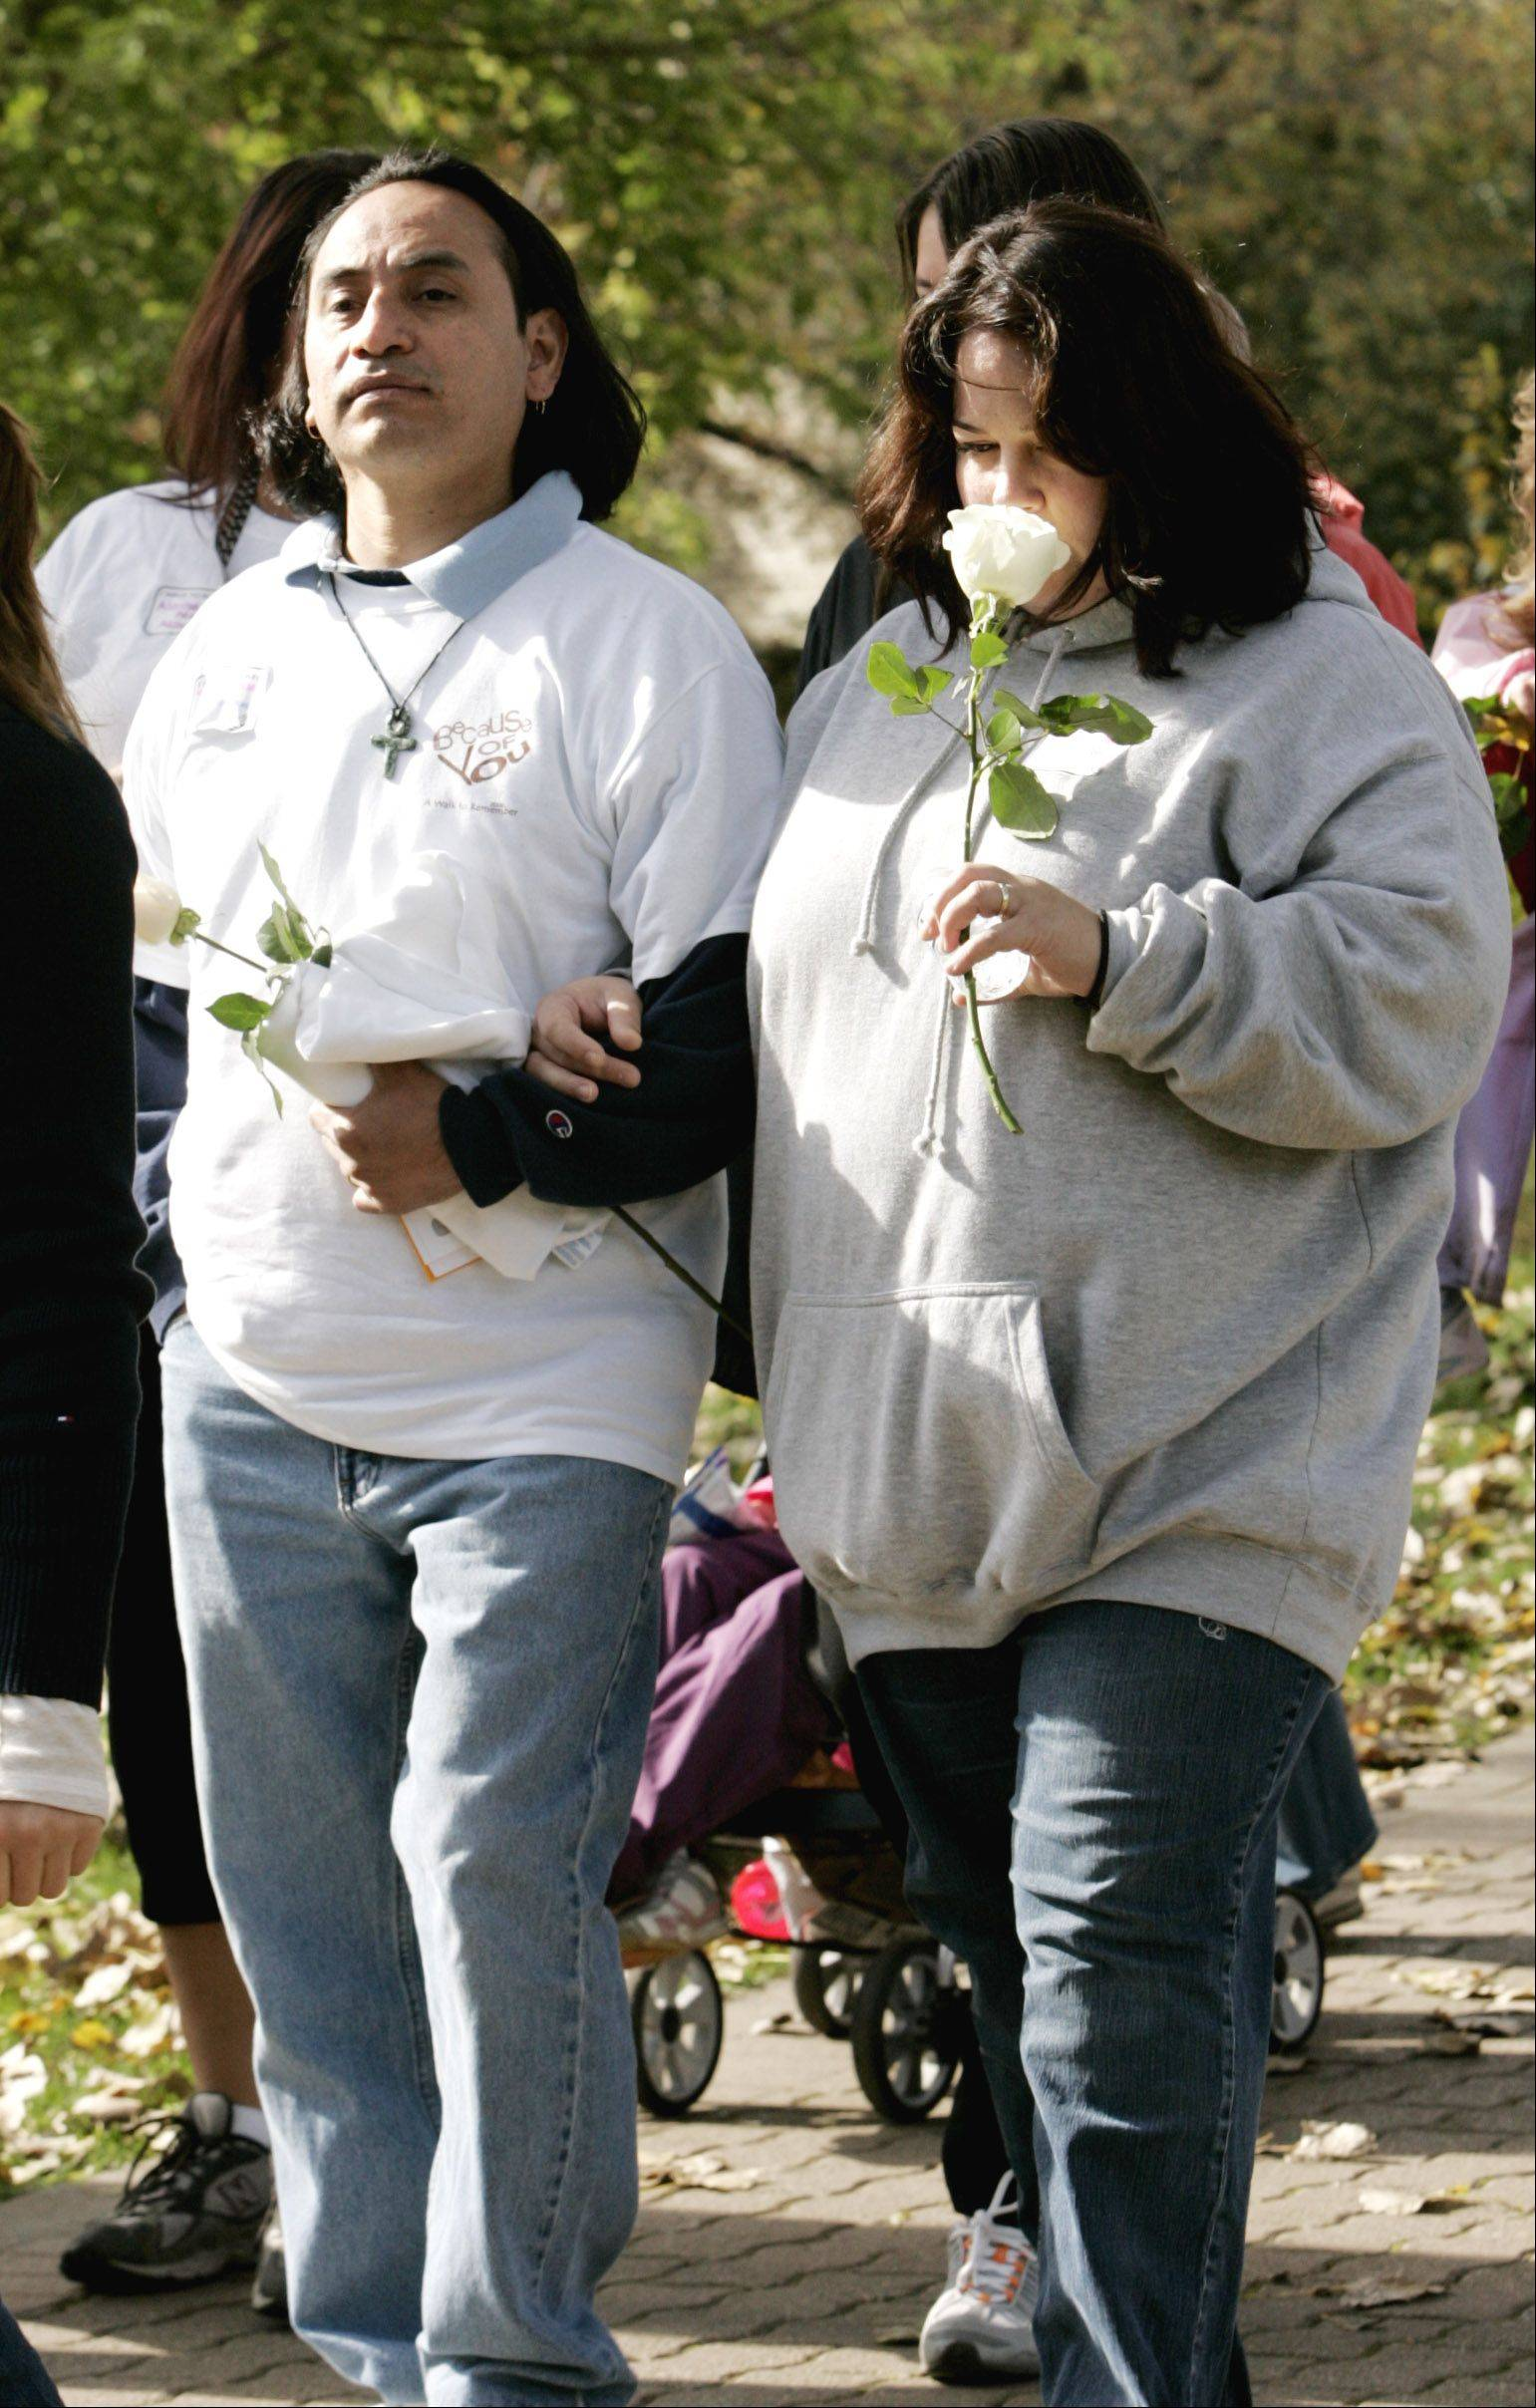 Parents who have experienced the death of a baby during pregnancy or in early infancy will receive a memorial white rose in a ceremony preceding A Walk to Remember on Saturday in Naperville.